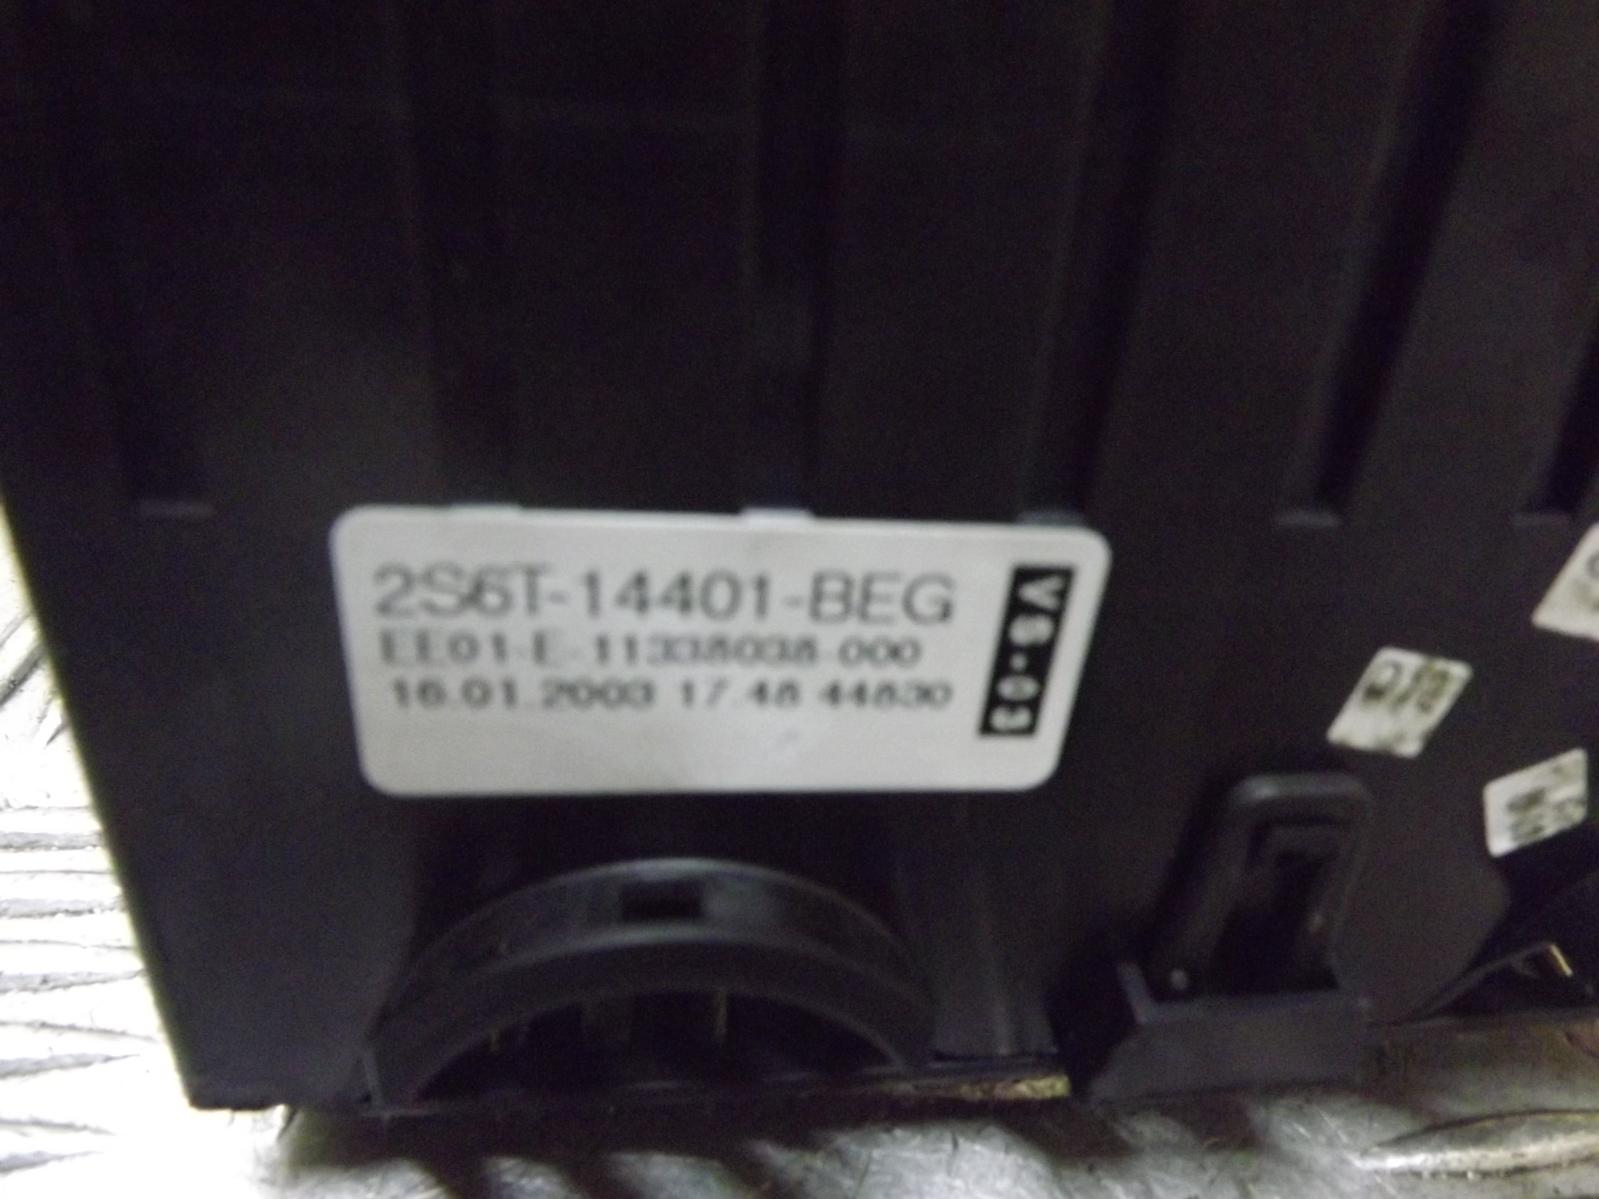 efefa6e9-e7c4-423e-9262-4e8e8eacfa03 Where Is The Fuse Box On Ford Fiesta Mk on